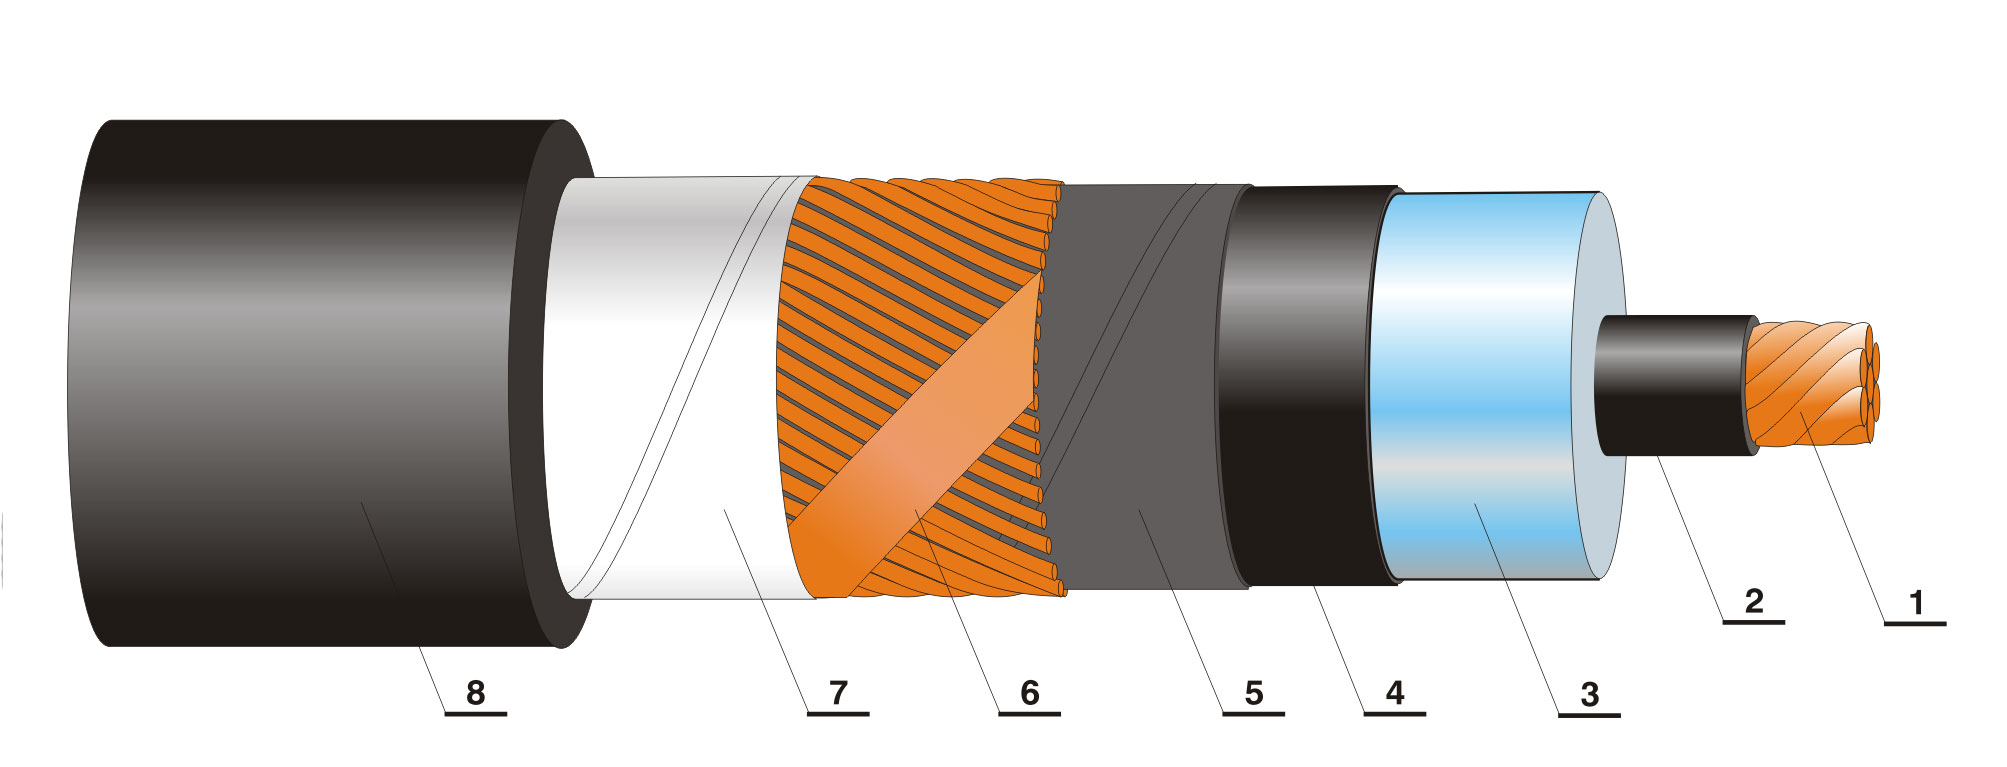 High Voltage Cable And Wire : High voltage power cable gallery